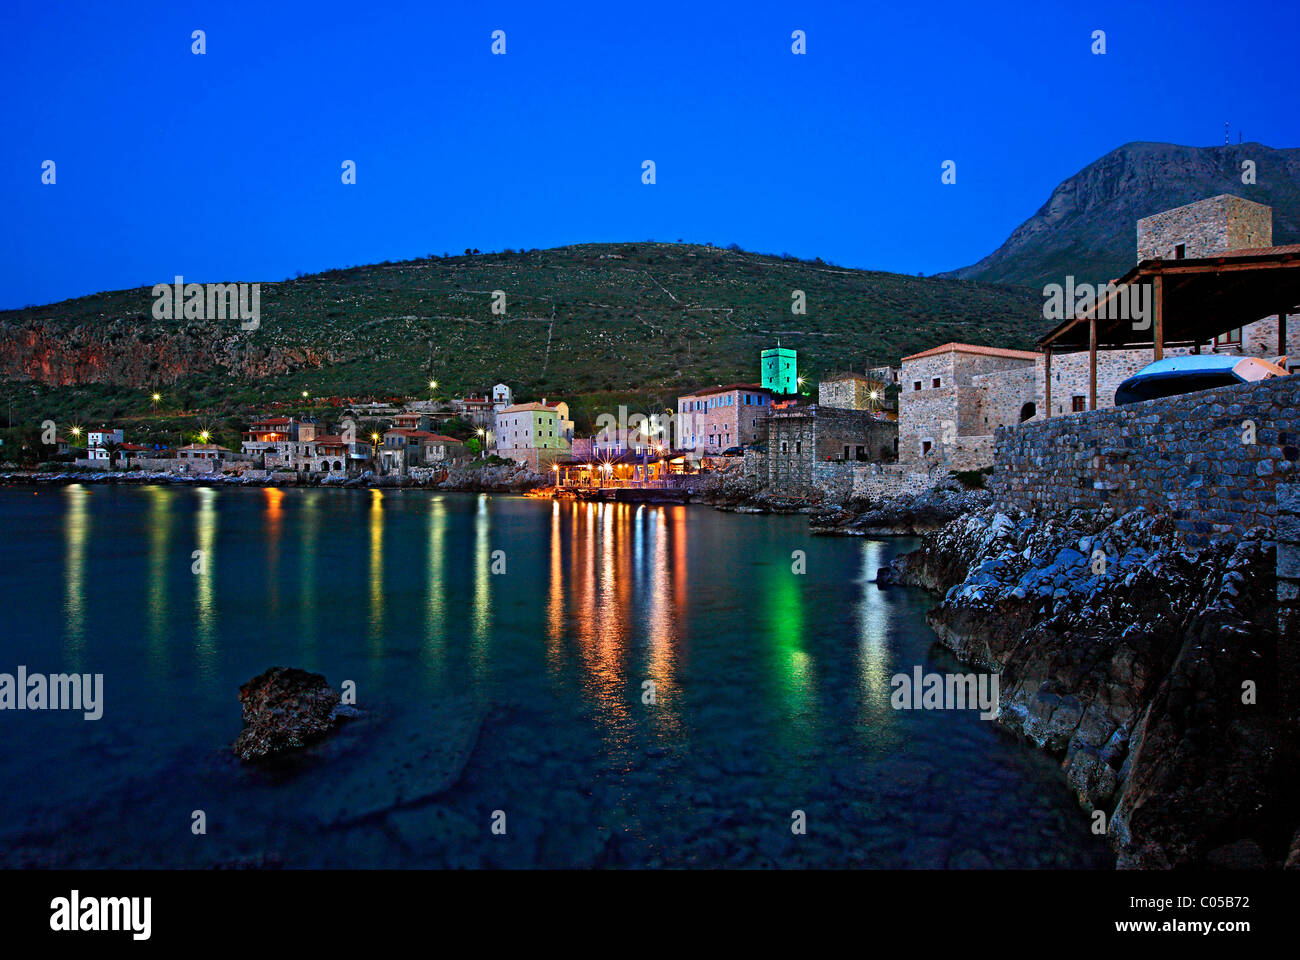 Limeni, one of the most beautiful seaside villages of Mani region, at night. Lakonia, Peloponnese. - Stock Image